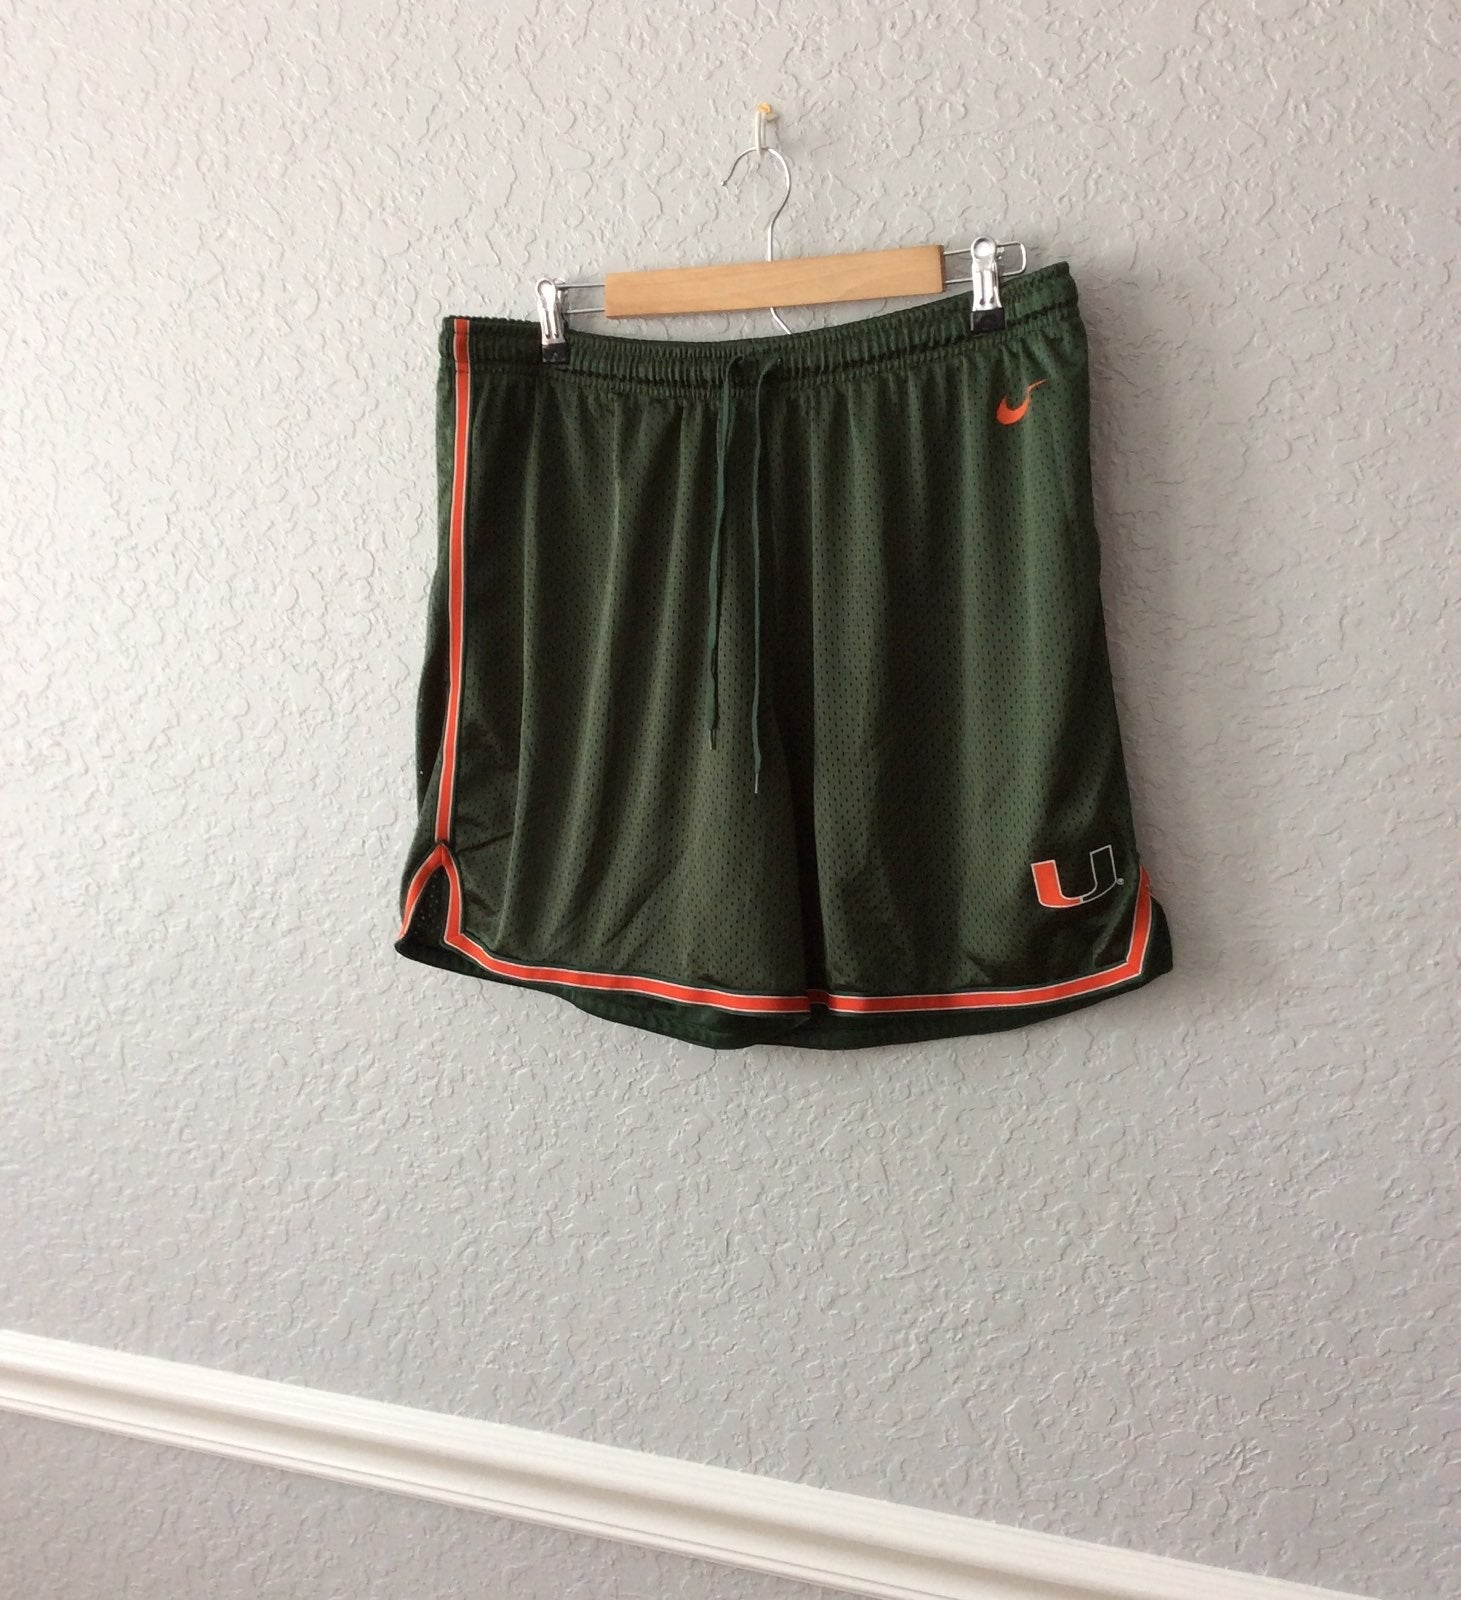 New Nike women's shorts